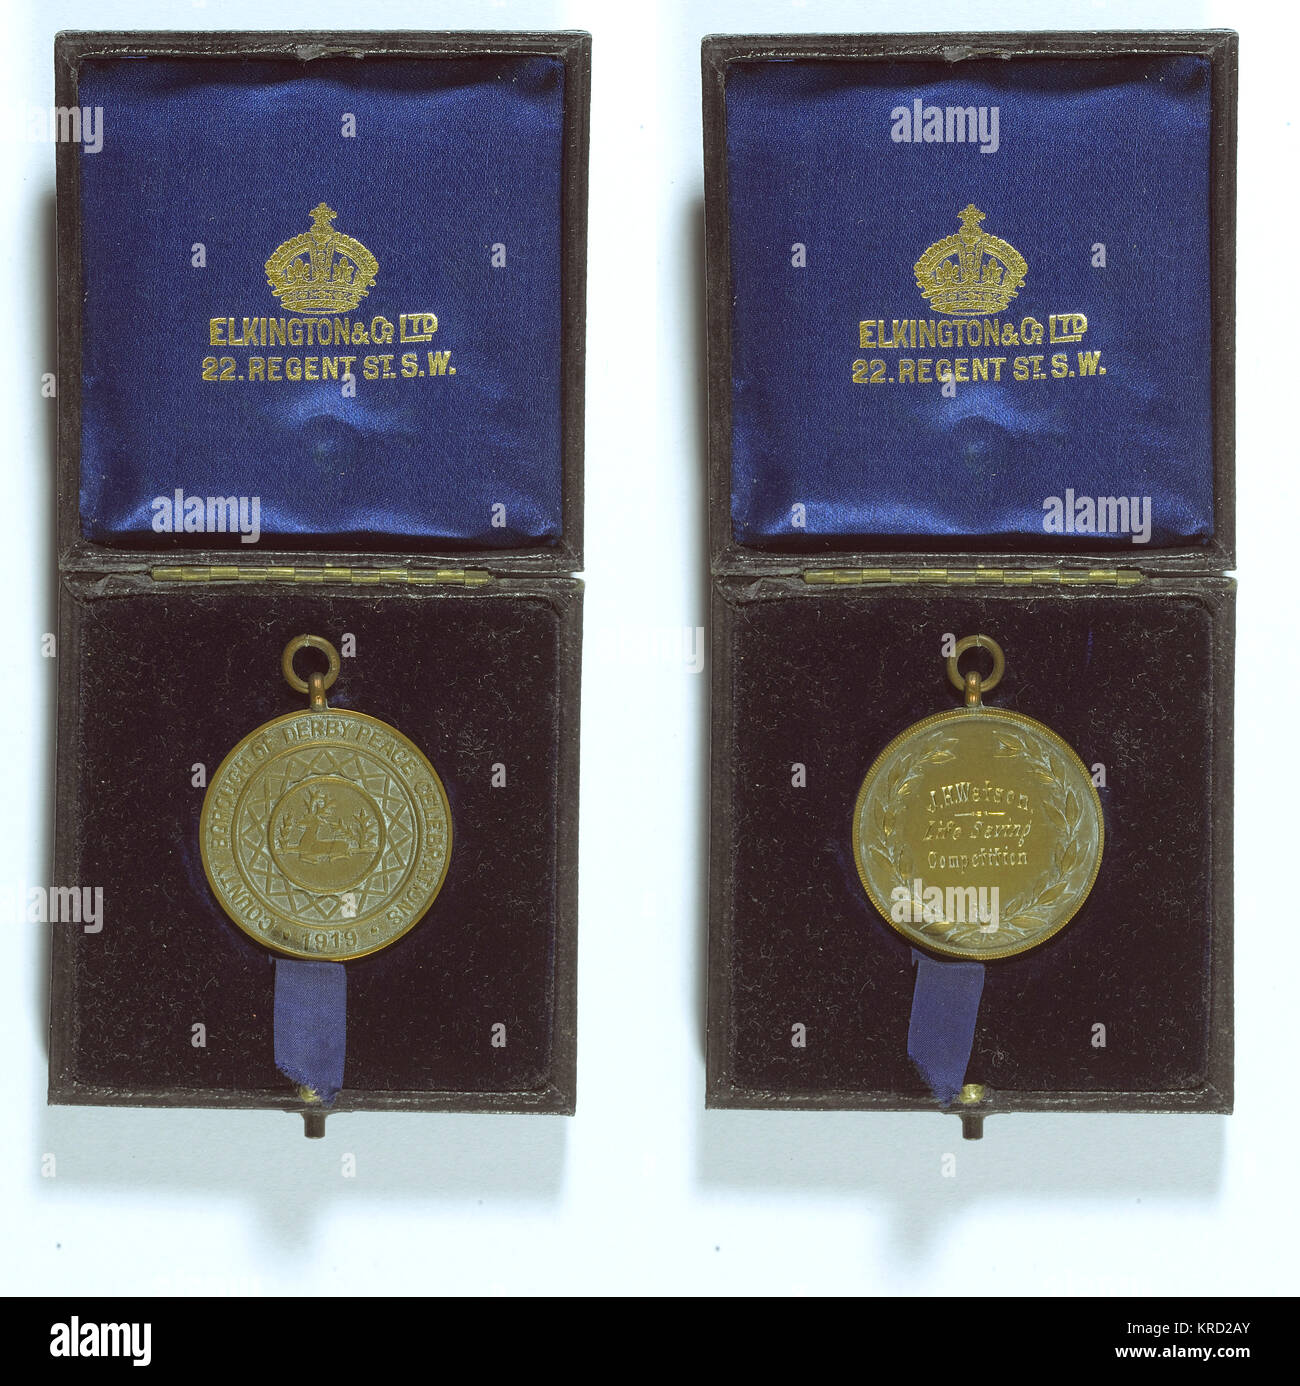 Swimming medal of the County Borough of Derby Peace Celebrations, Life Saving Competition, awarded to J. H. Watson. - Stock Image